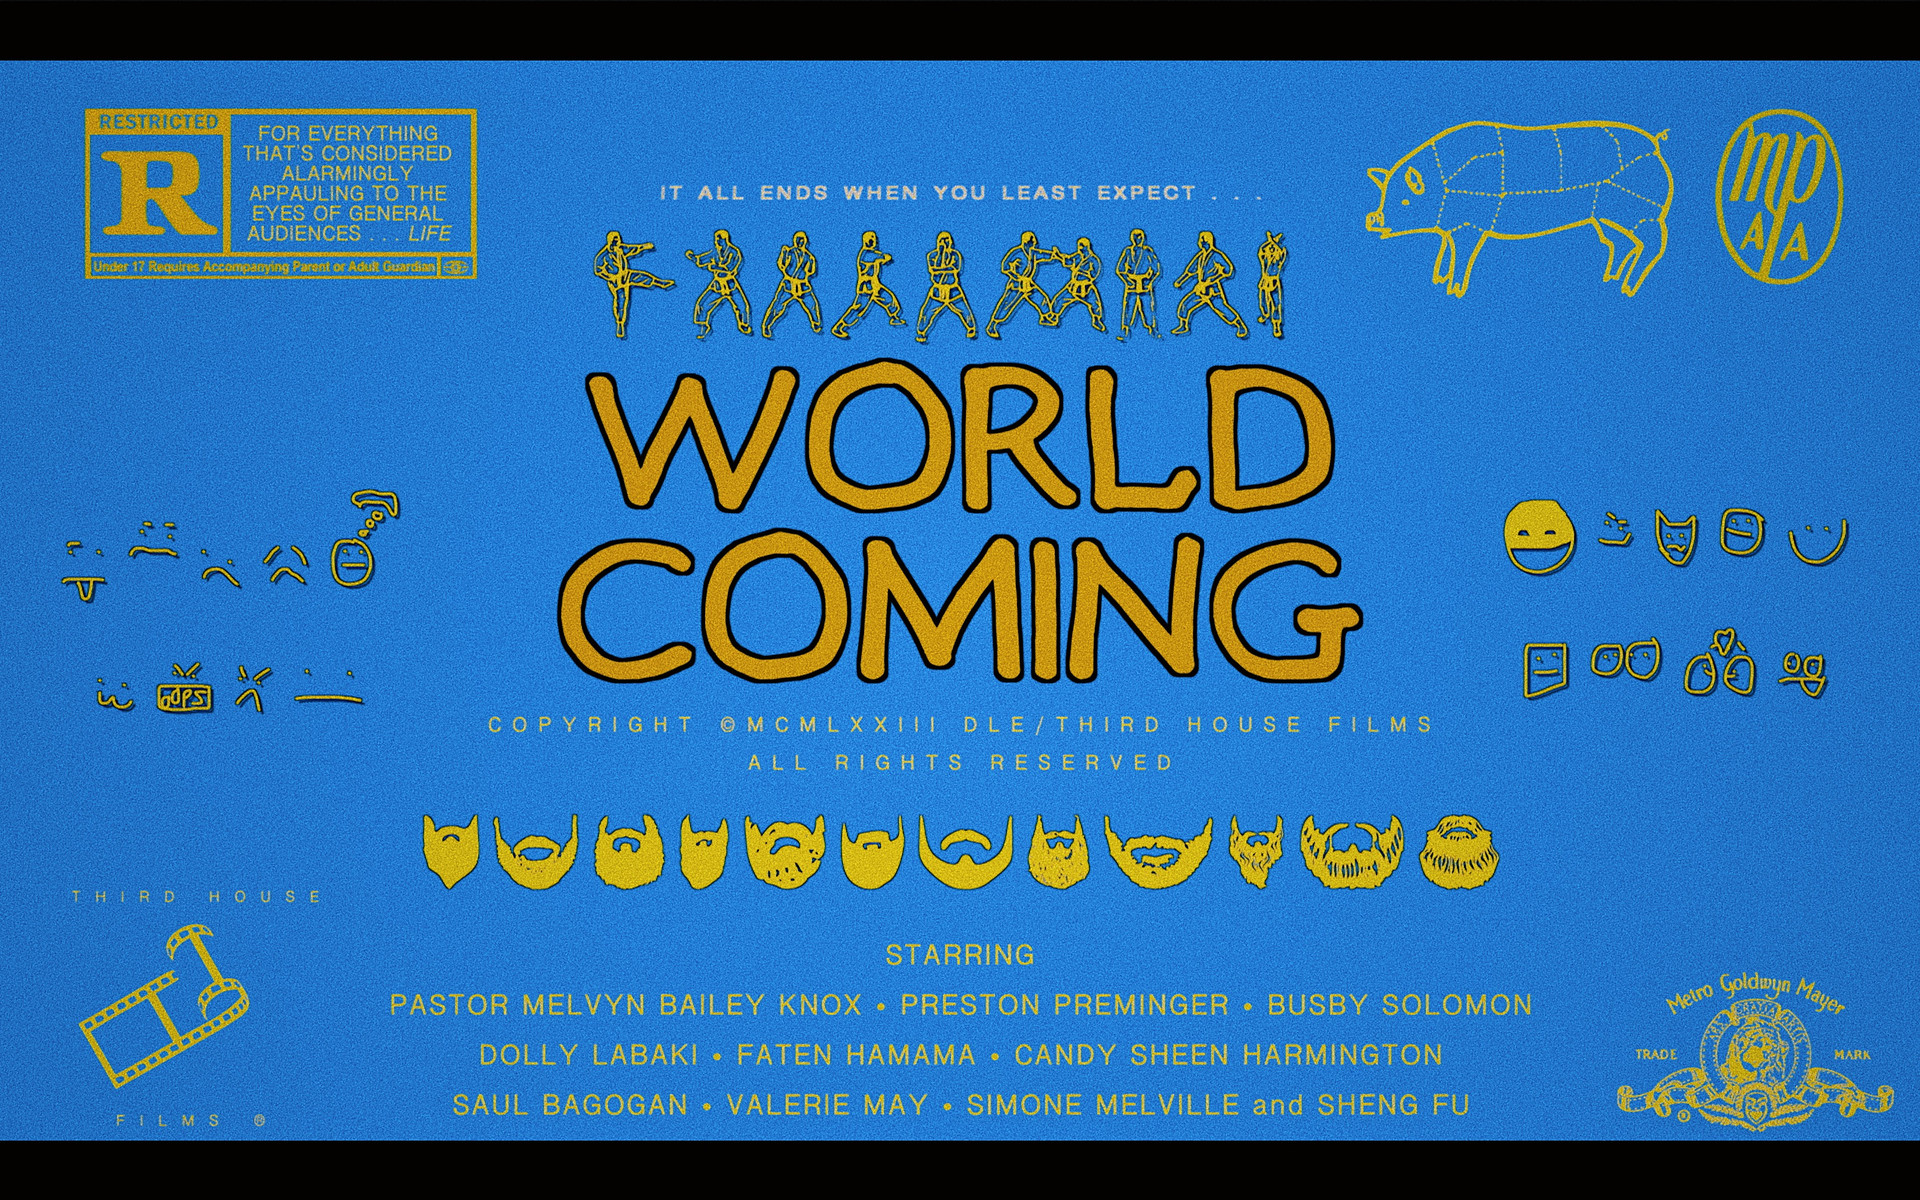 WORLD COMING